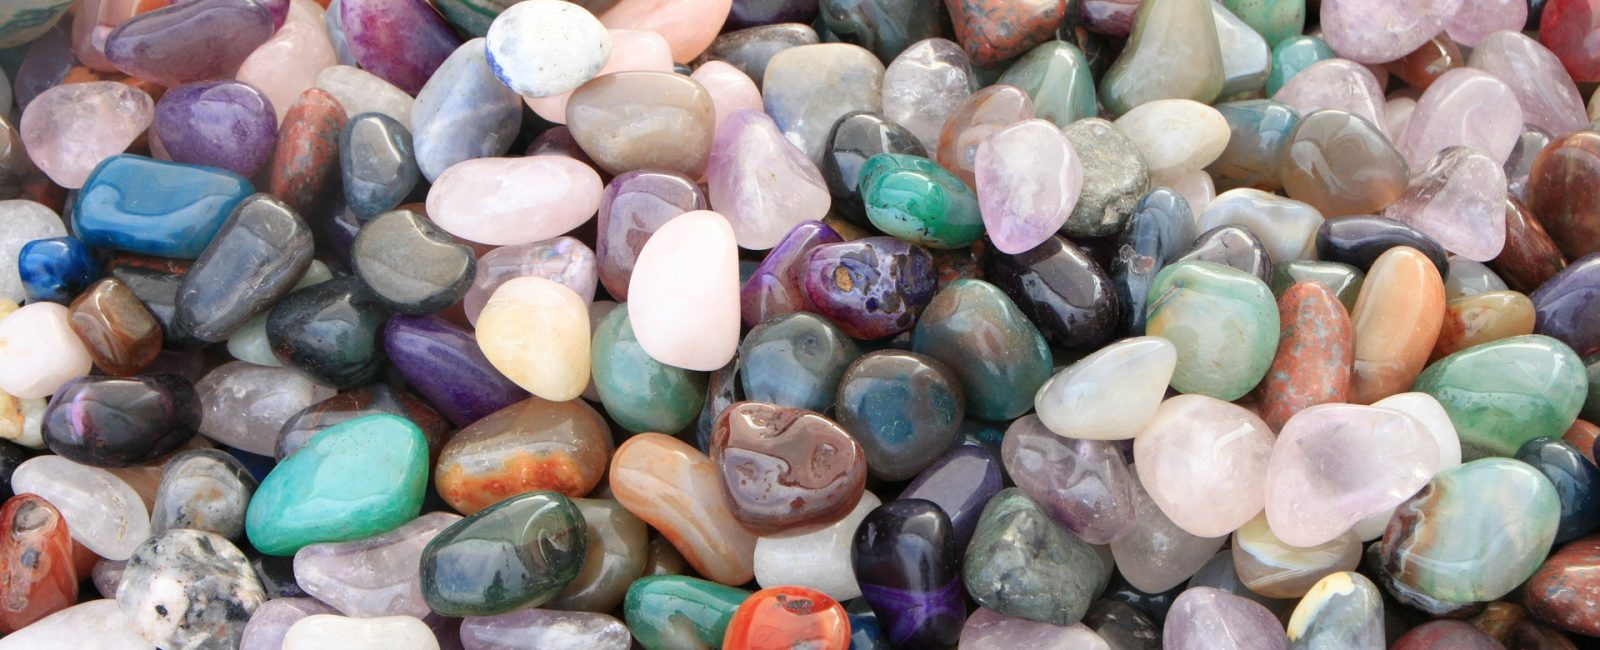 rocks, mineralss, and gemstones - tumbled gemstones